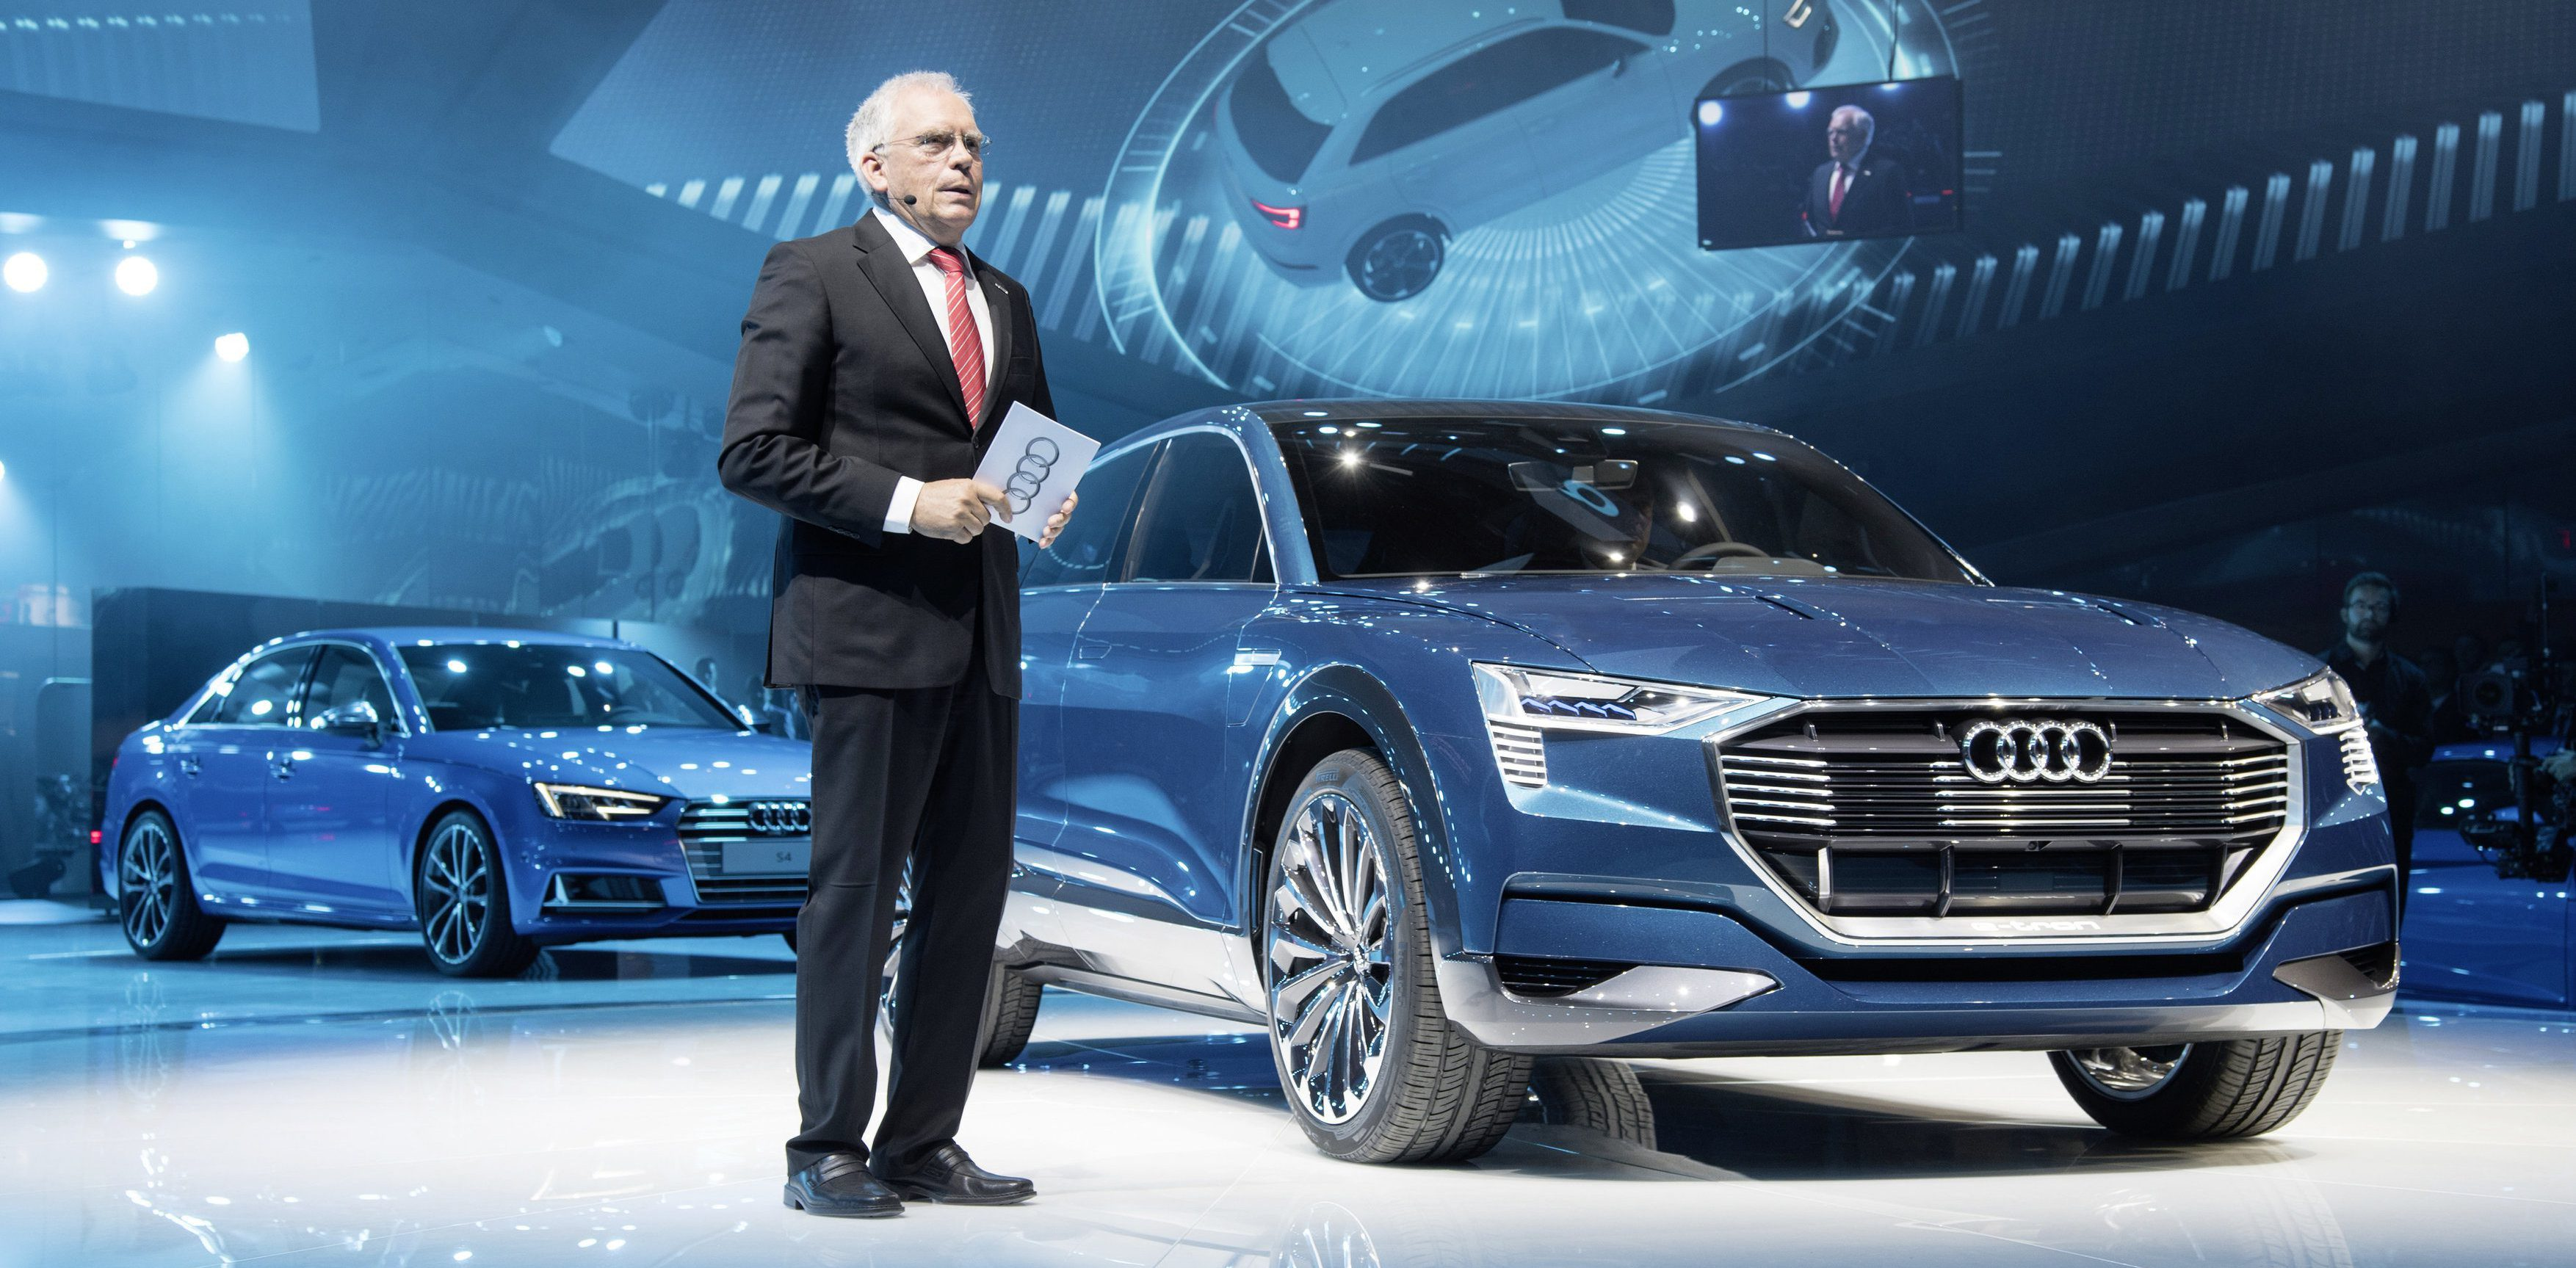 Prof. Dr. Ulrich Hackenberg, Member of the Board of Management of AUDI AG for Technical Development, beside the concept car Audi e-tron quattro at the International Auto Show 2015 in Frankfurt/Main.